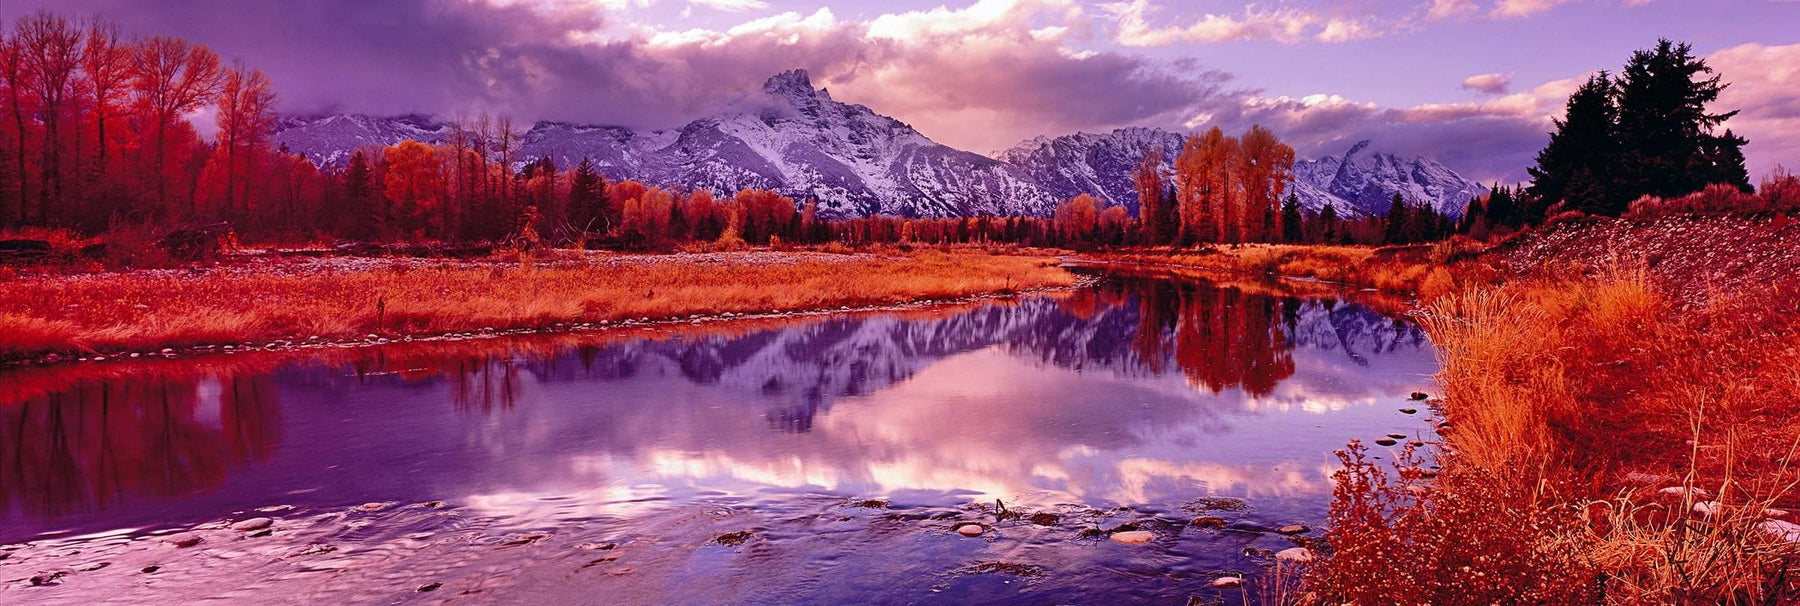 Snow covered Grand Teton Mountains and orange foliage reflecting into the Snake River at sunset